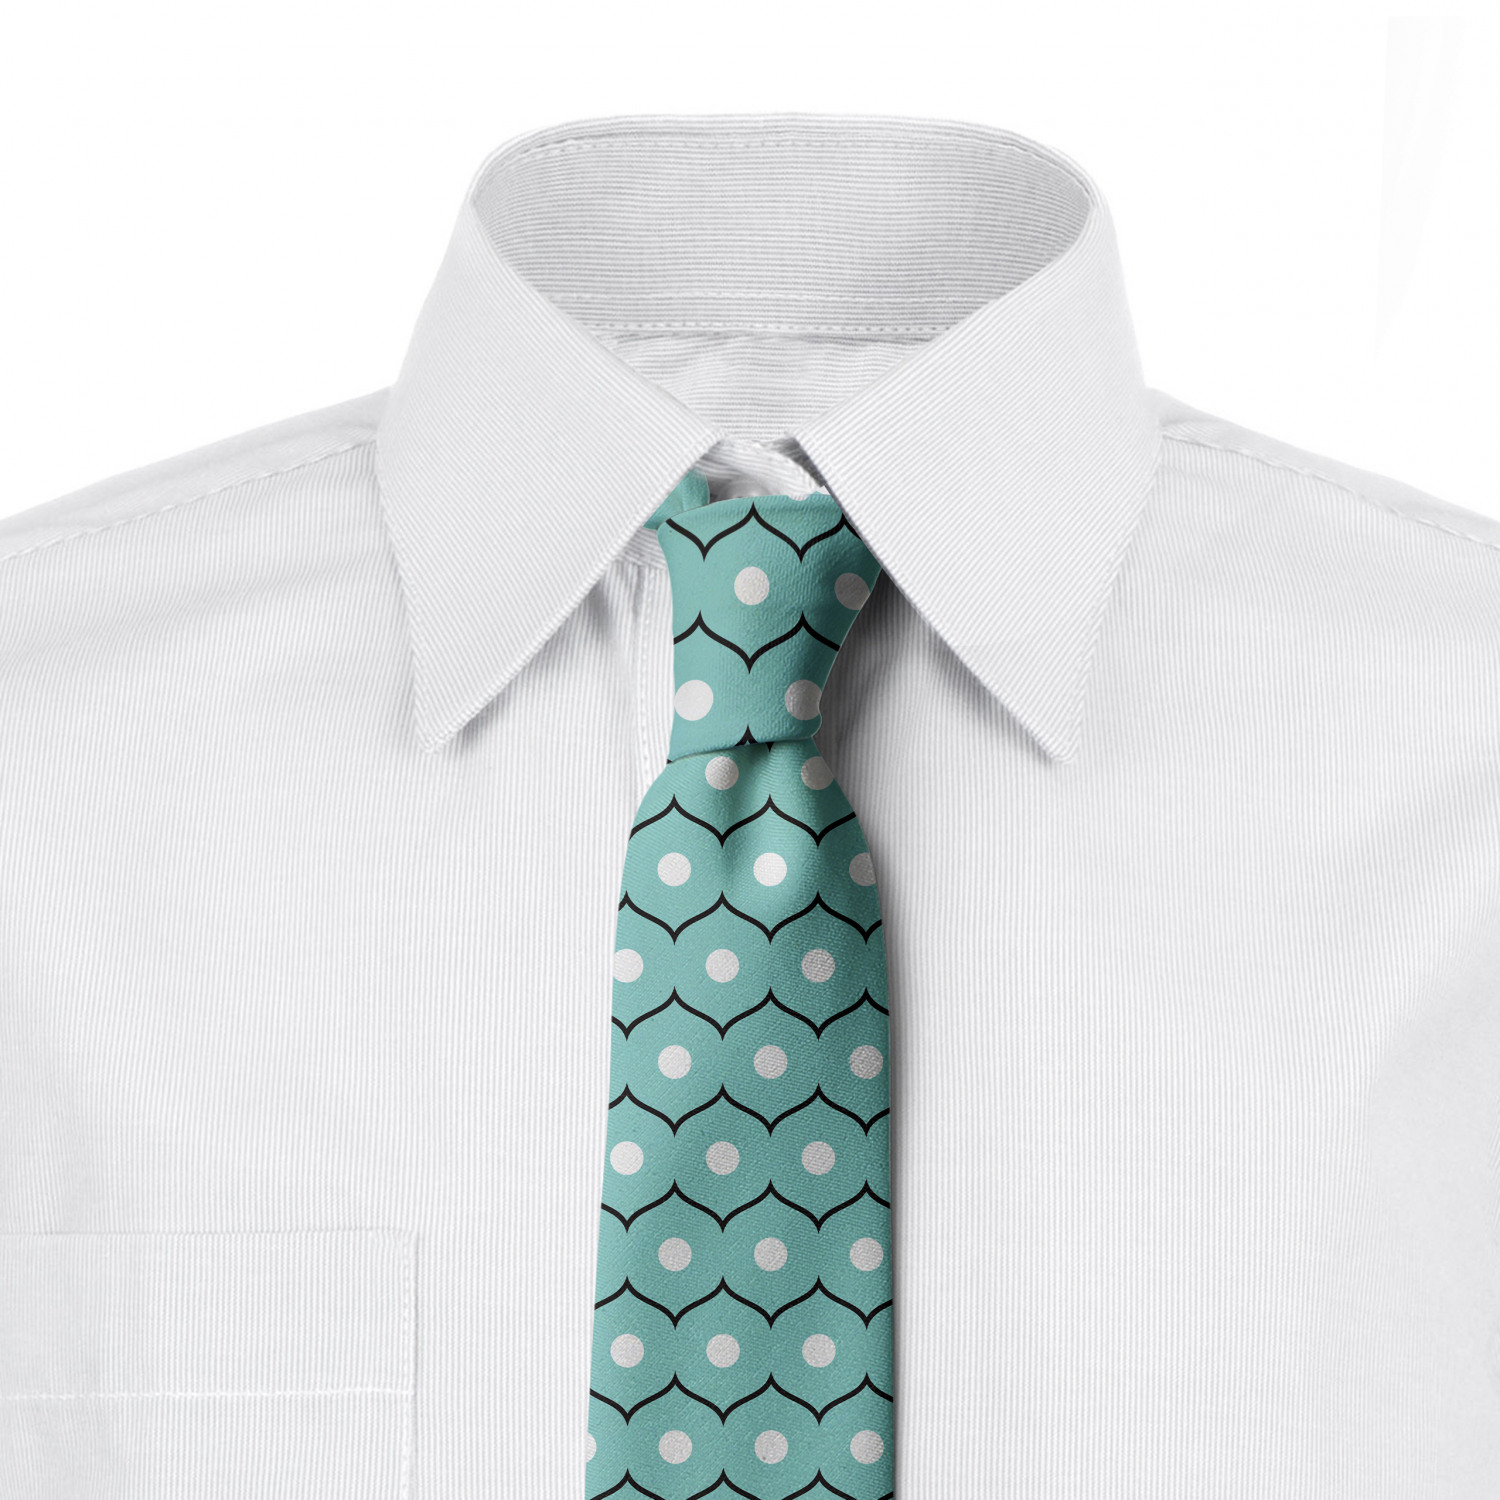 3.7 Ambesonne Mens Tie Night Blue and White Dotted Sea Wave Motif Art